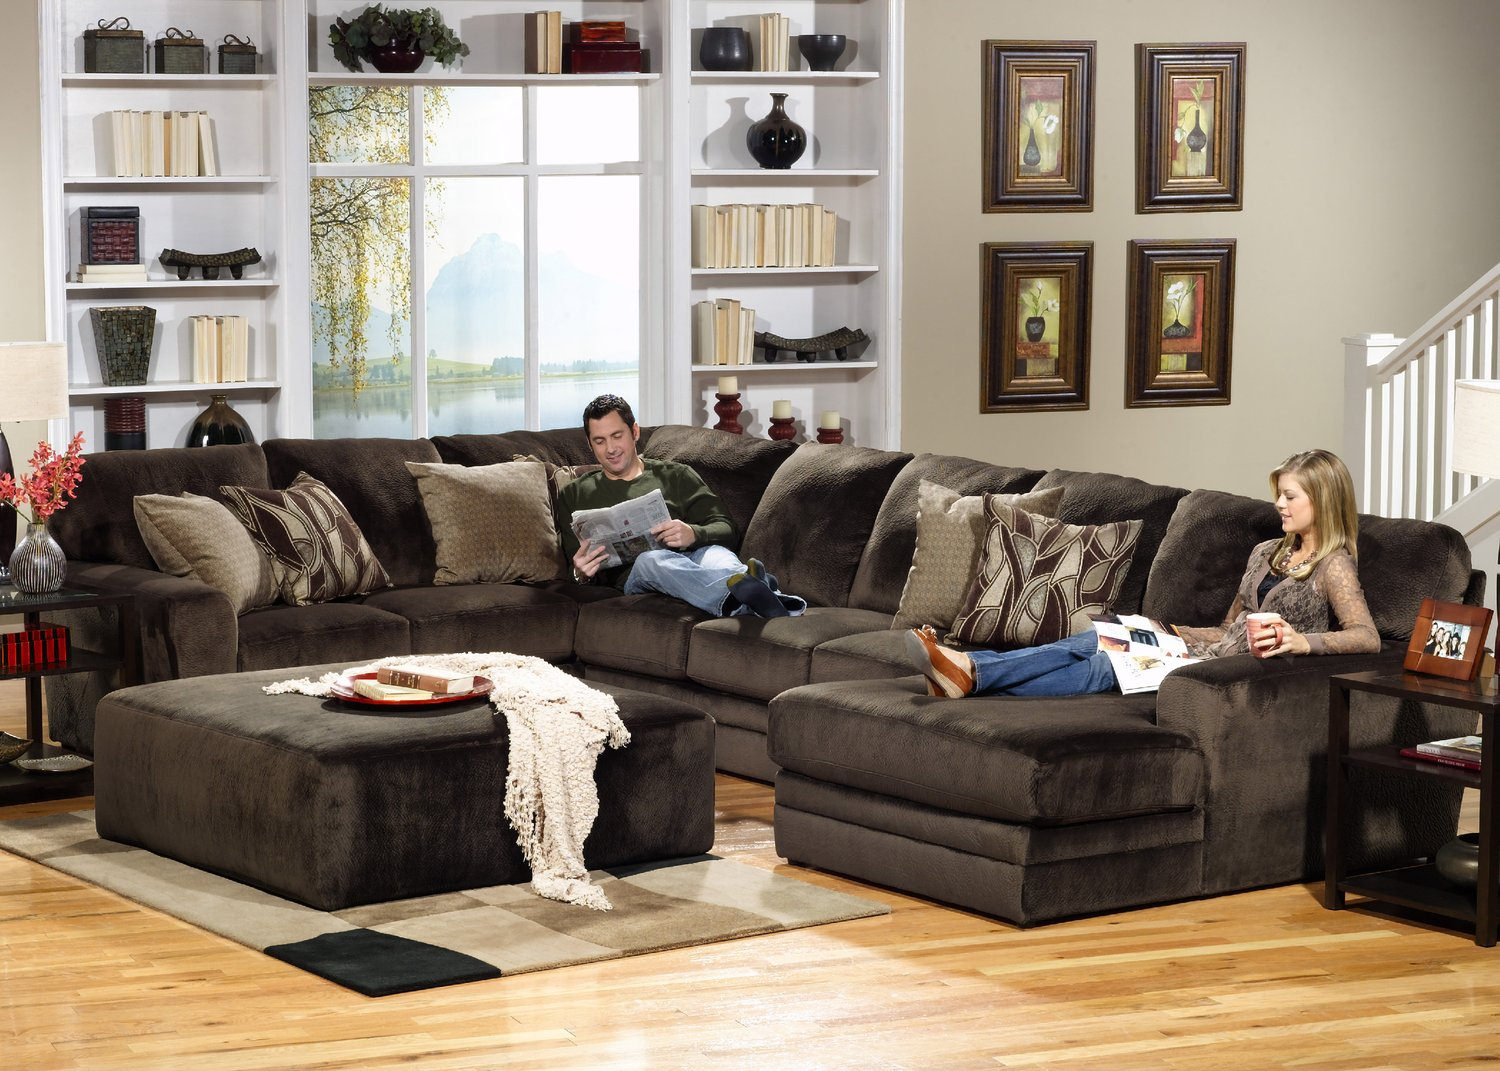 Sectional Sofas Living Room Seating Hom Furniture Pertaining To 10 Piece Sectional Sofa (Image 12 of 15)